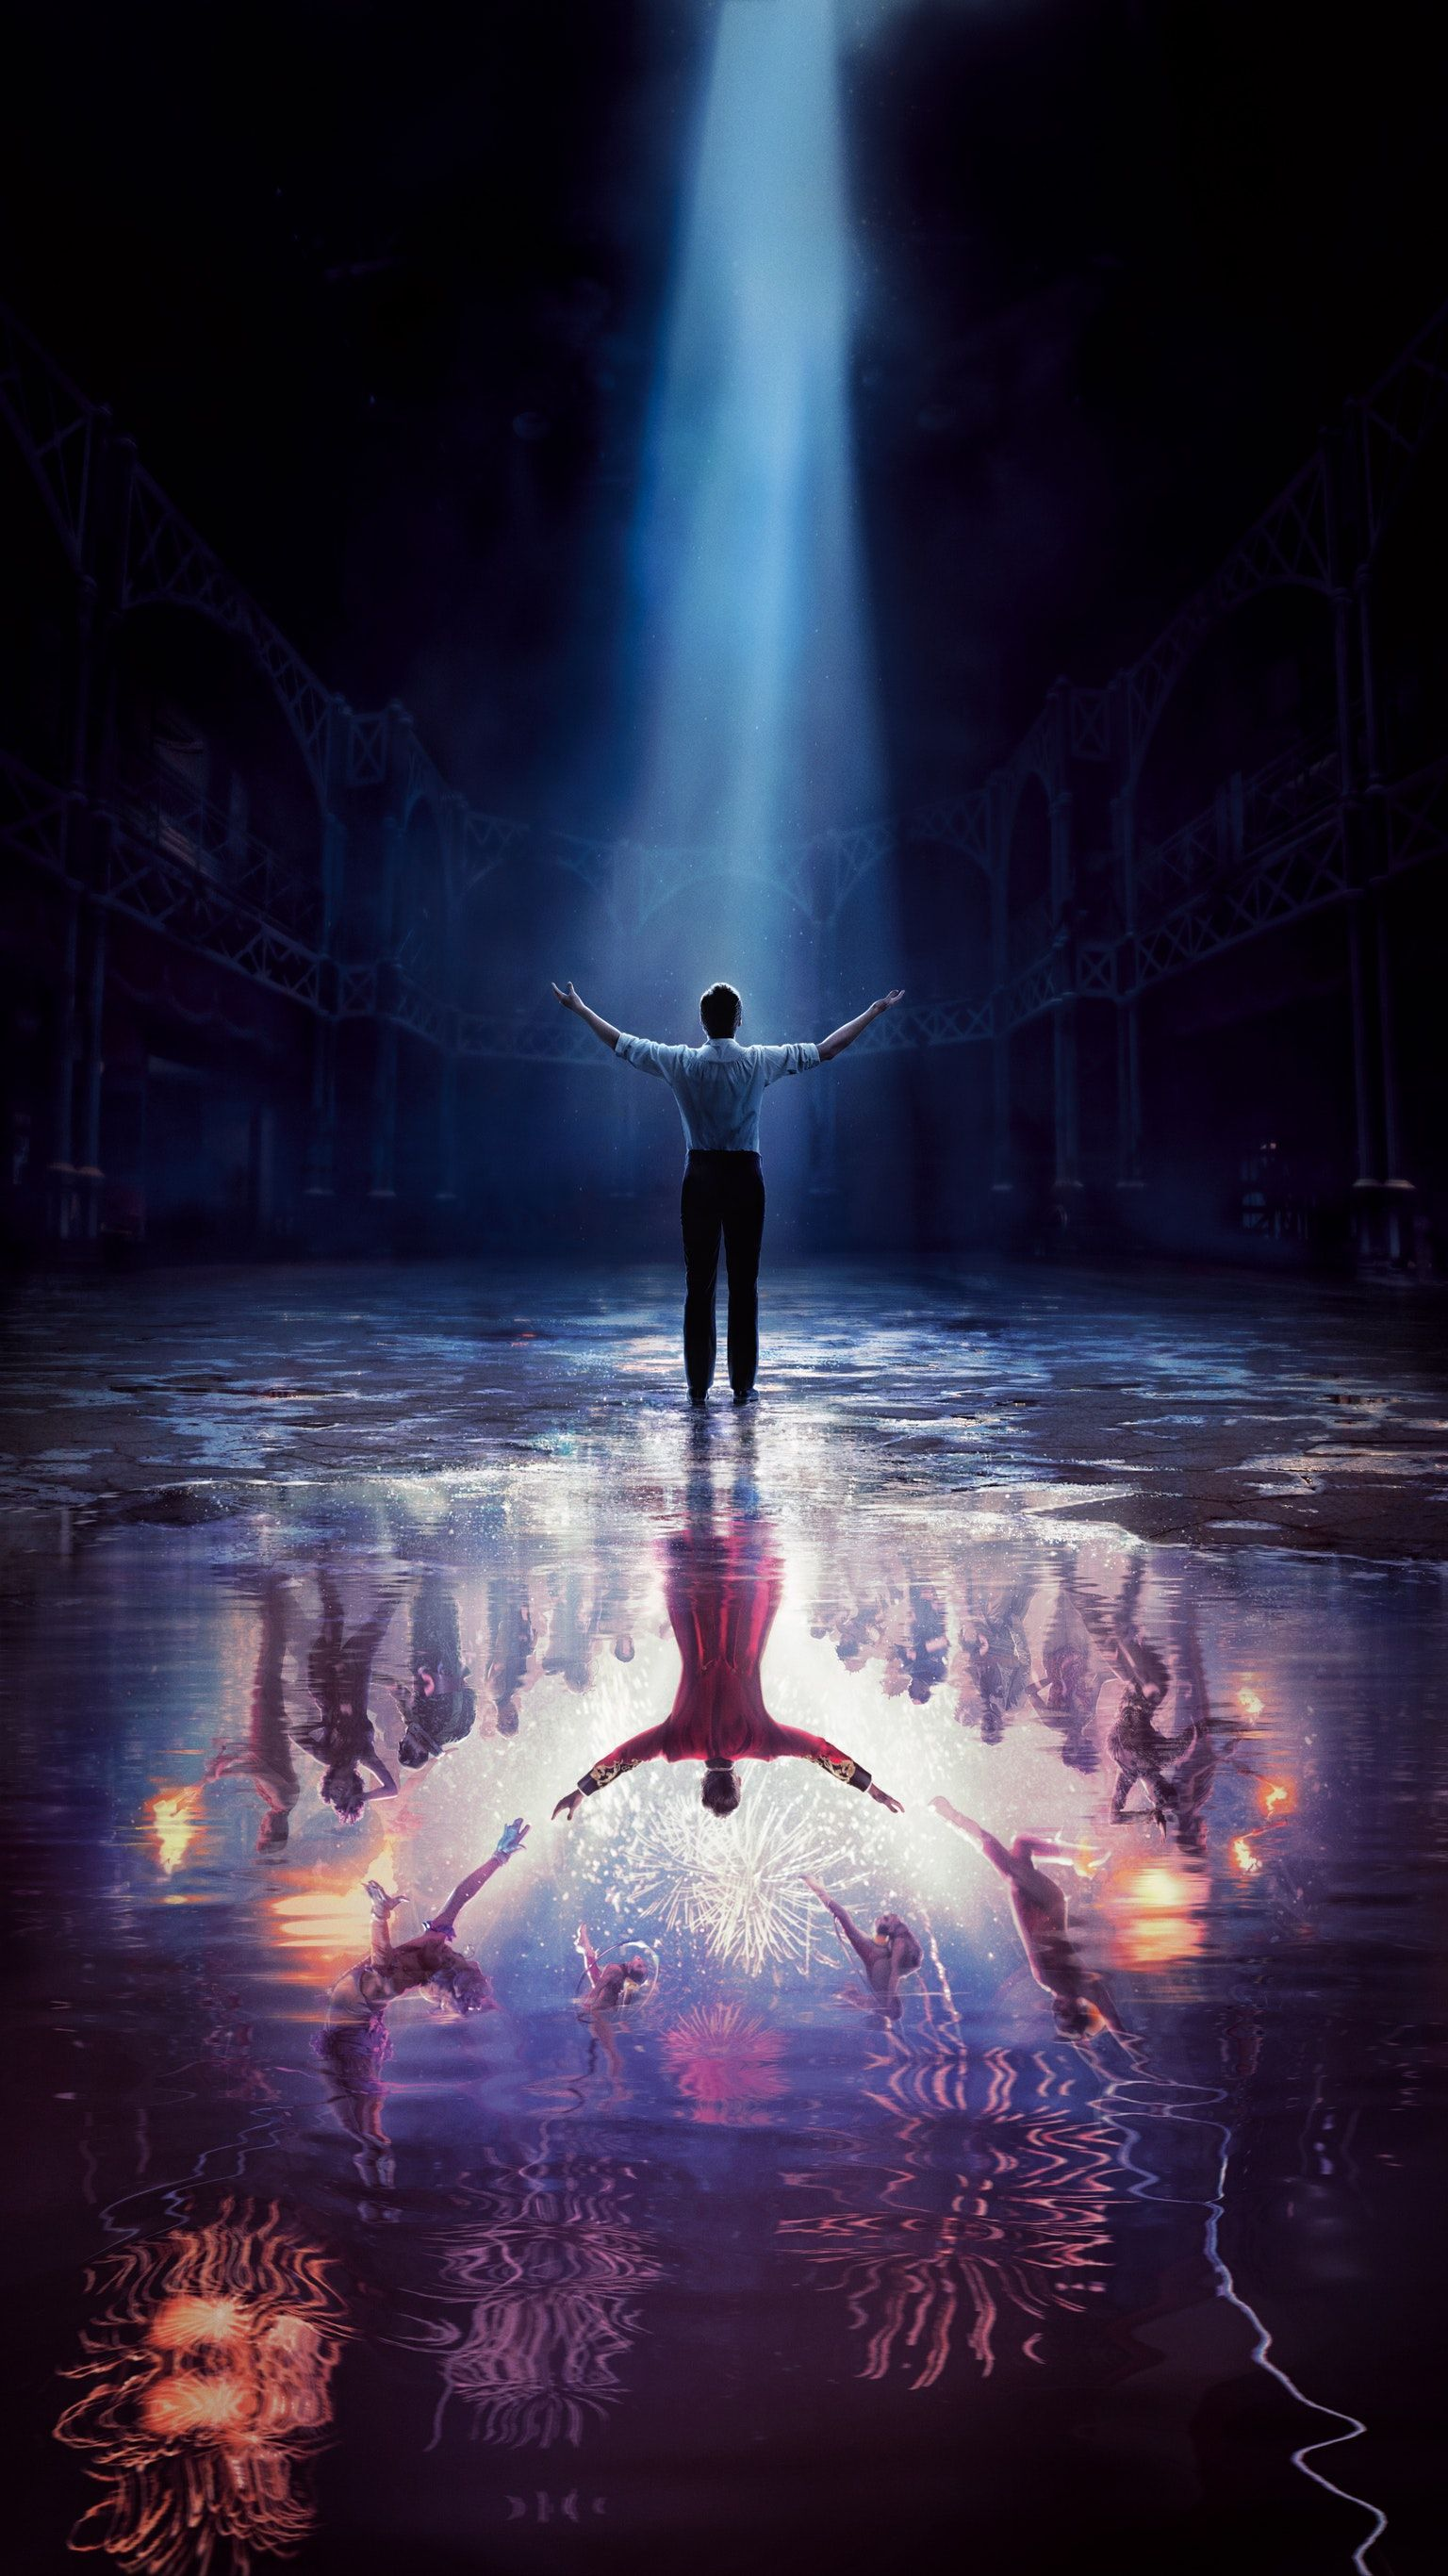 Quote Wallpapers Phone The Greatest Showman 2017 Phone Wallpaper So Tell Me